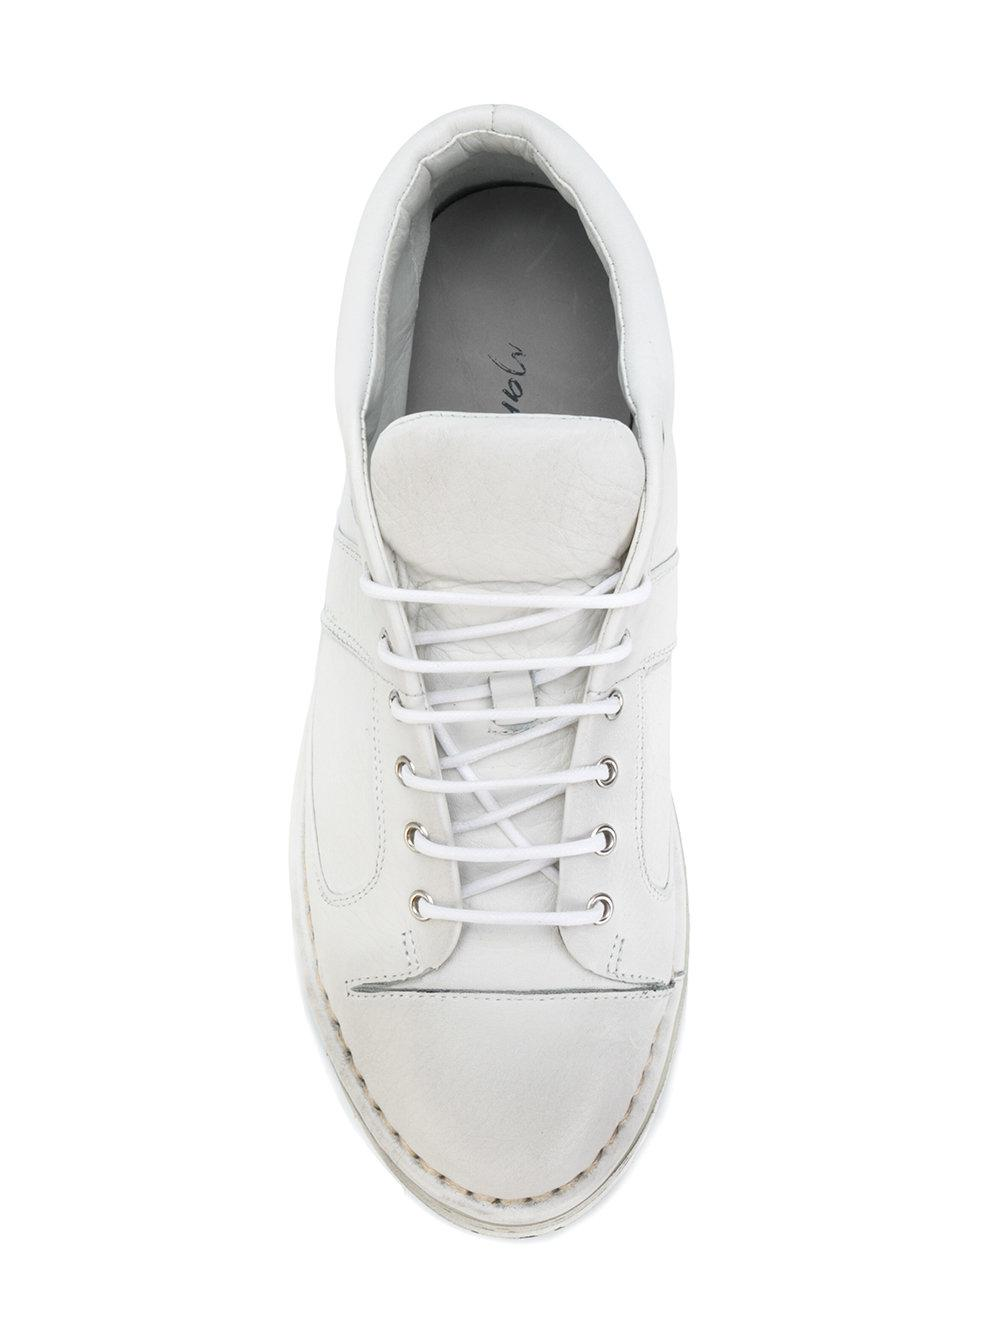 Marsèll Leather Distressed Sole Sneakers in White